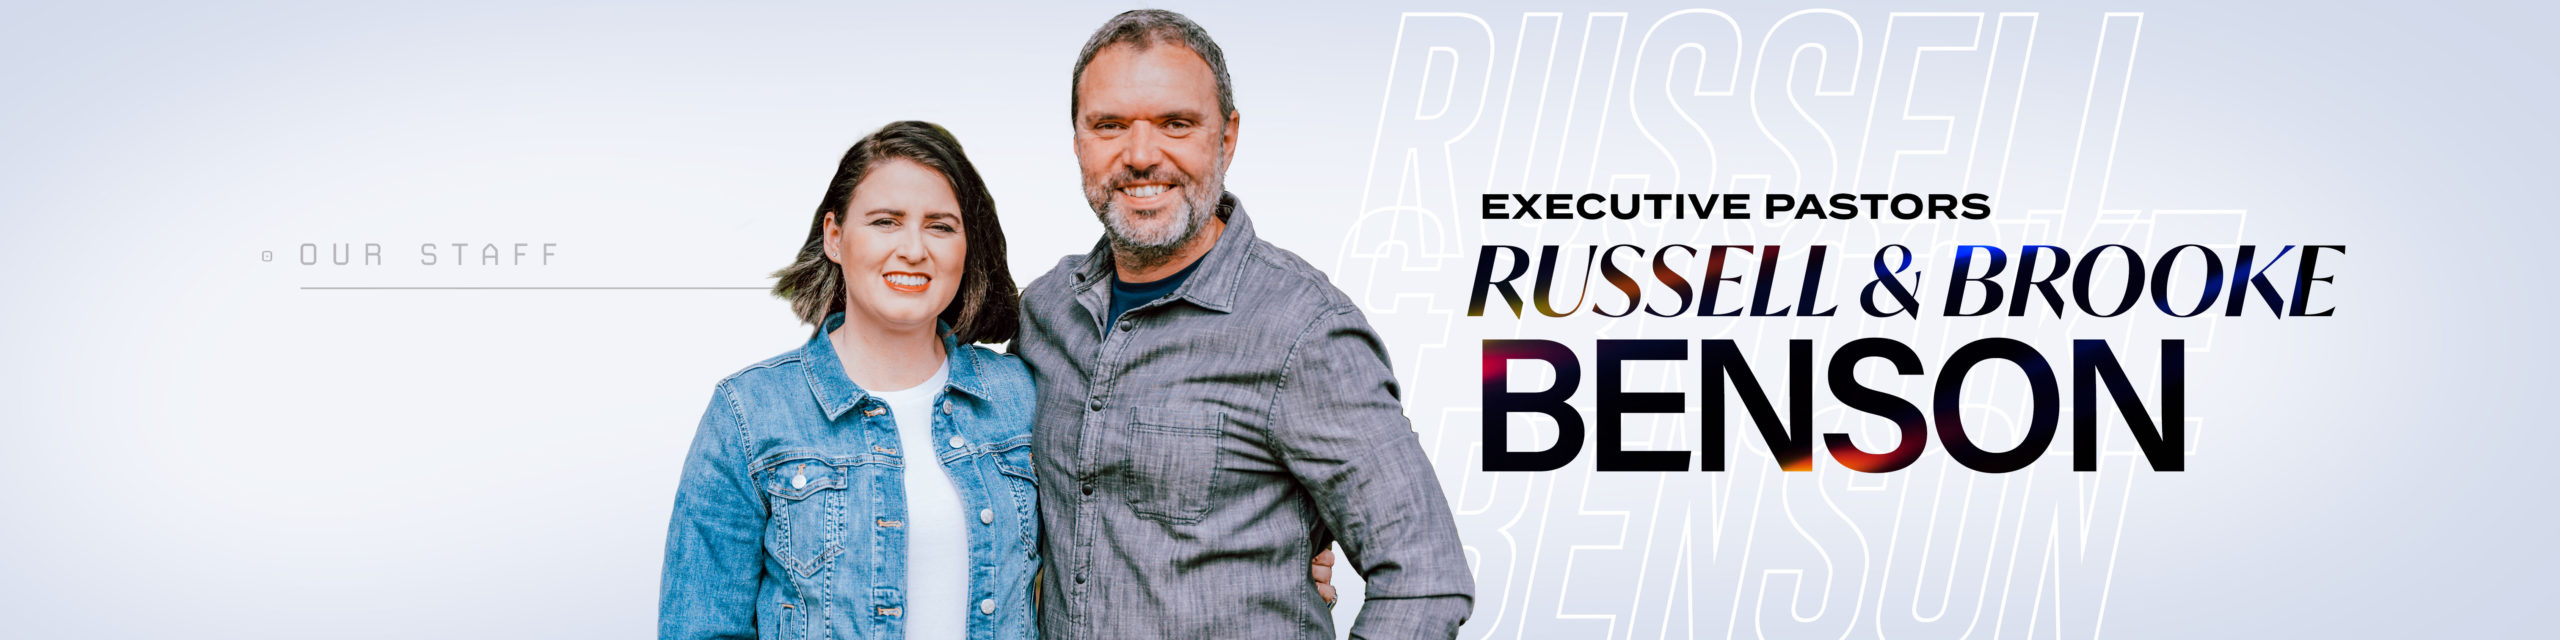 Russell and Brooke Benson - Executive Pastors of Nations Church Orlando